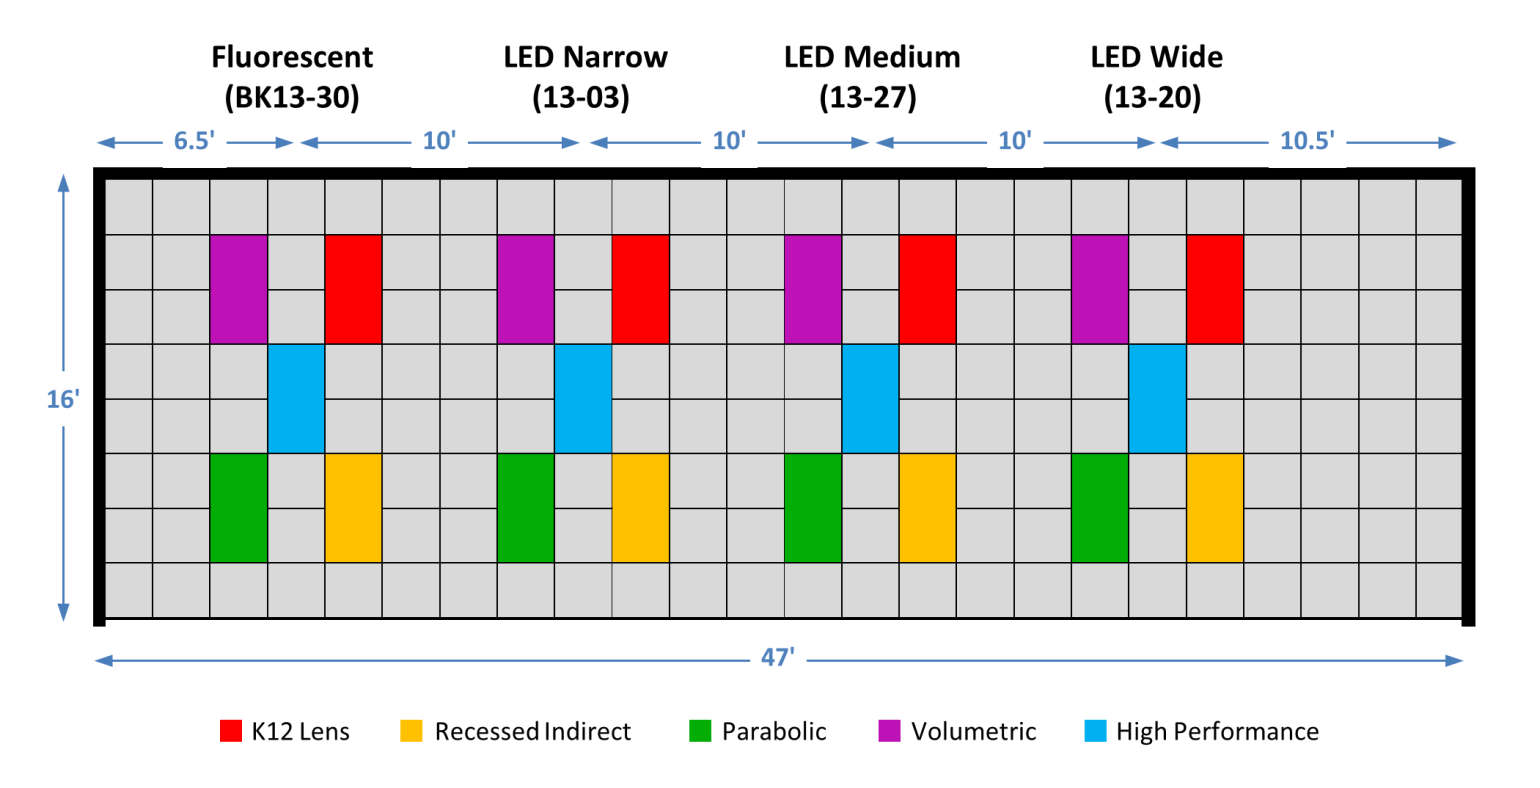 Figure 5. Reflected ceiling plan of PNNL lighting mockup facility, showing the layout of five troffer types lamped with four types of fluorescent or LED lamps.